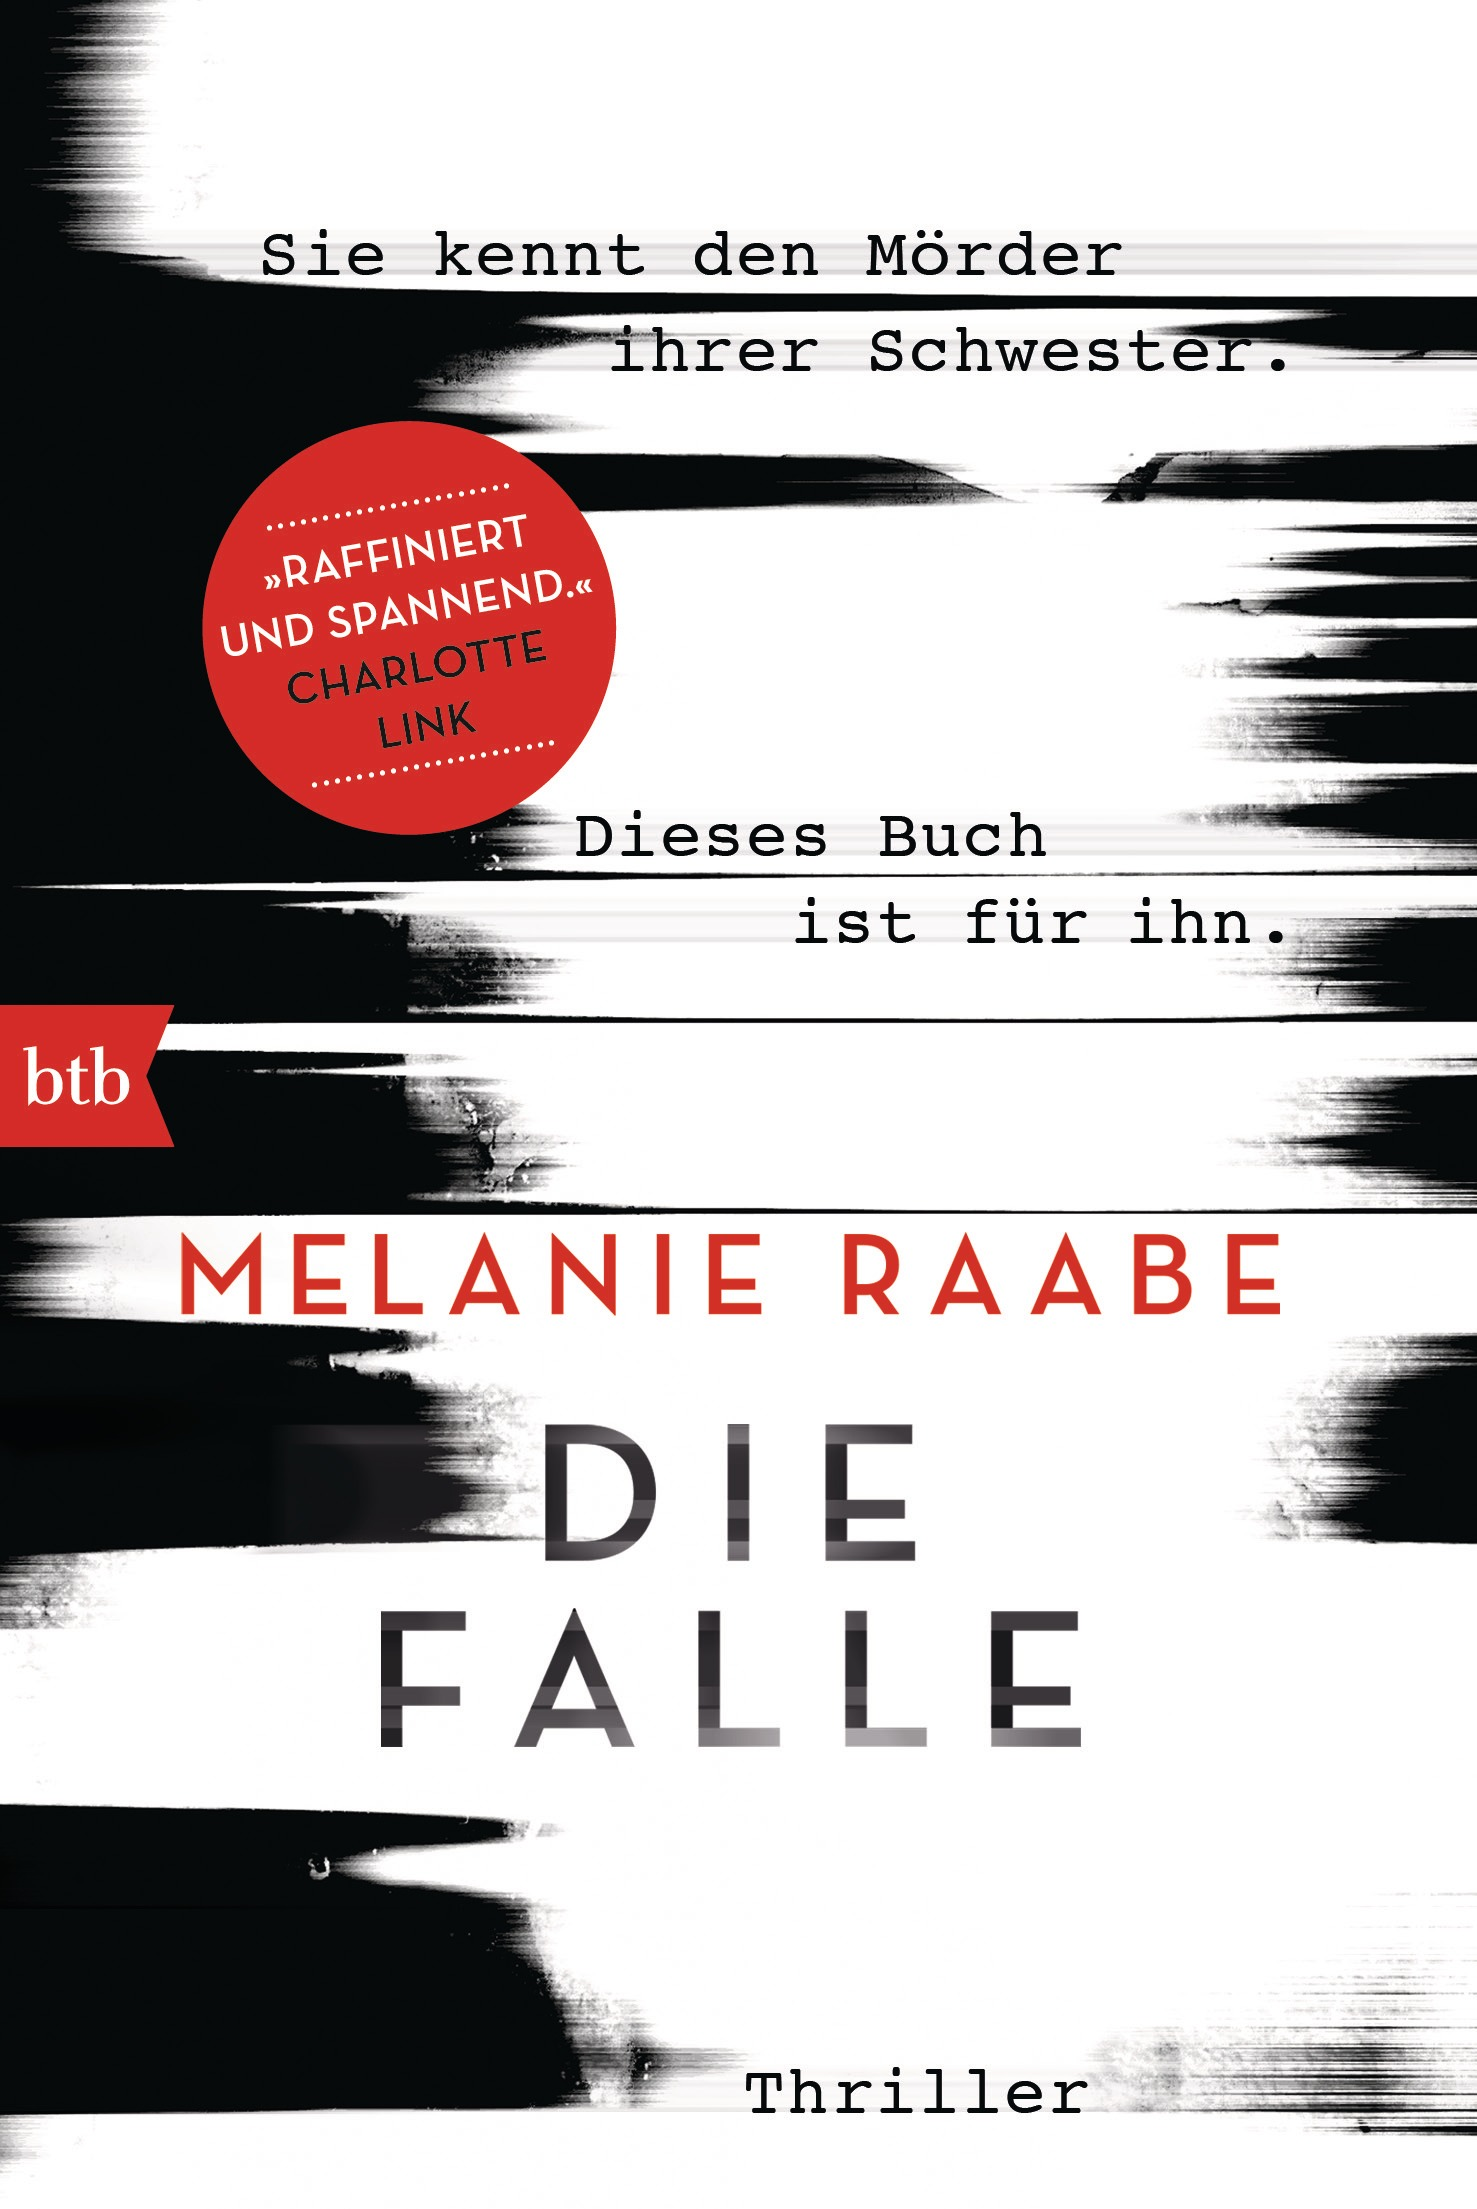 https://www.randomhouse.de/content/edition/covervoila_hires/Raabe_MDie_Falle_164320.jpg